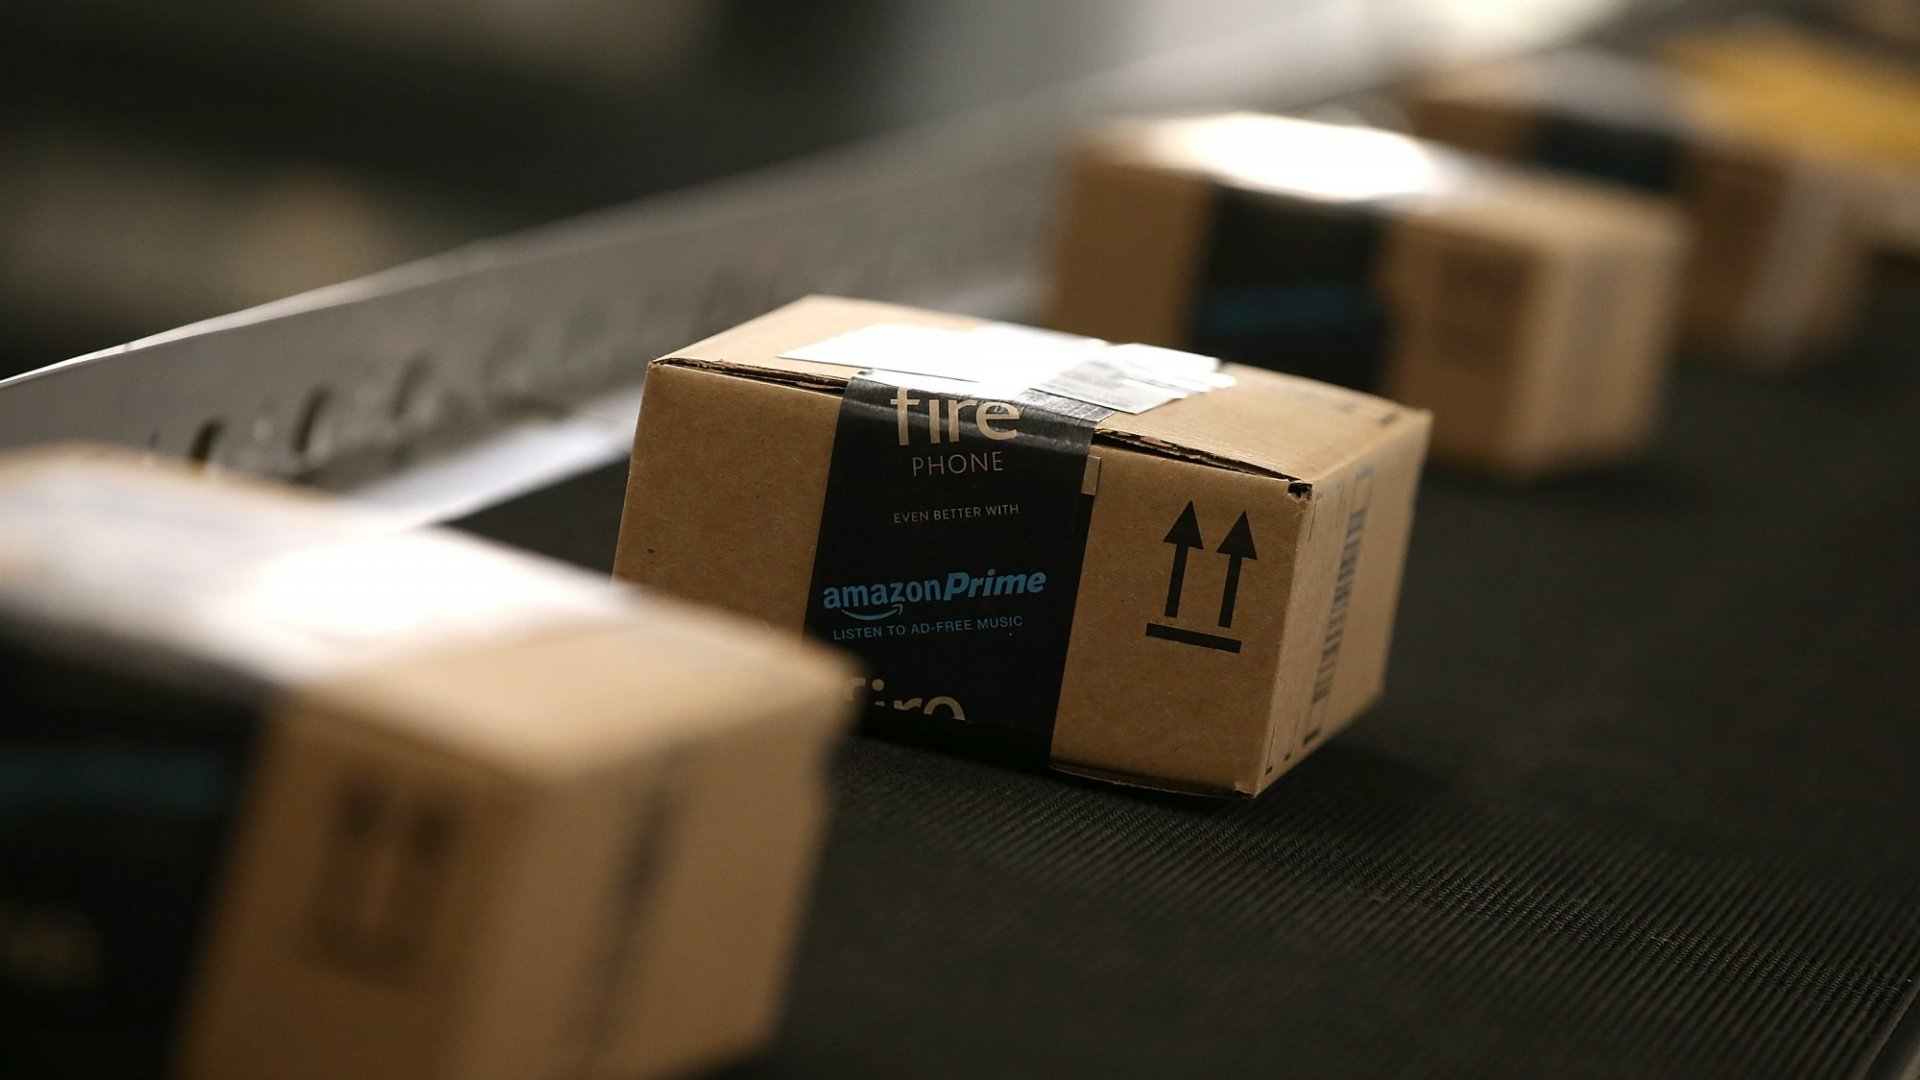 Amazon Is Now Collecting Sales Taxes for Idaho (But the Deal's Details Are Secret)